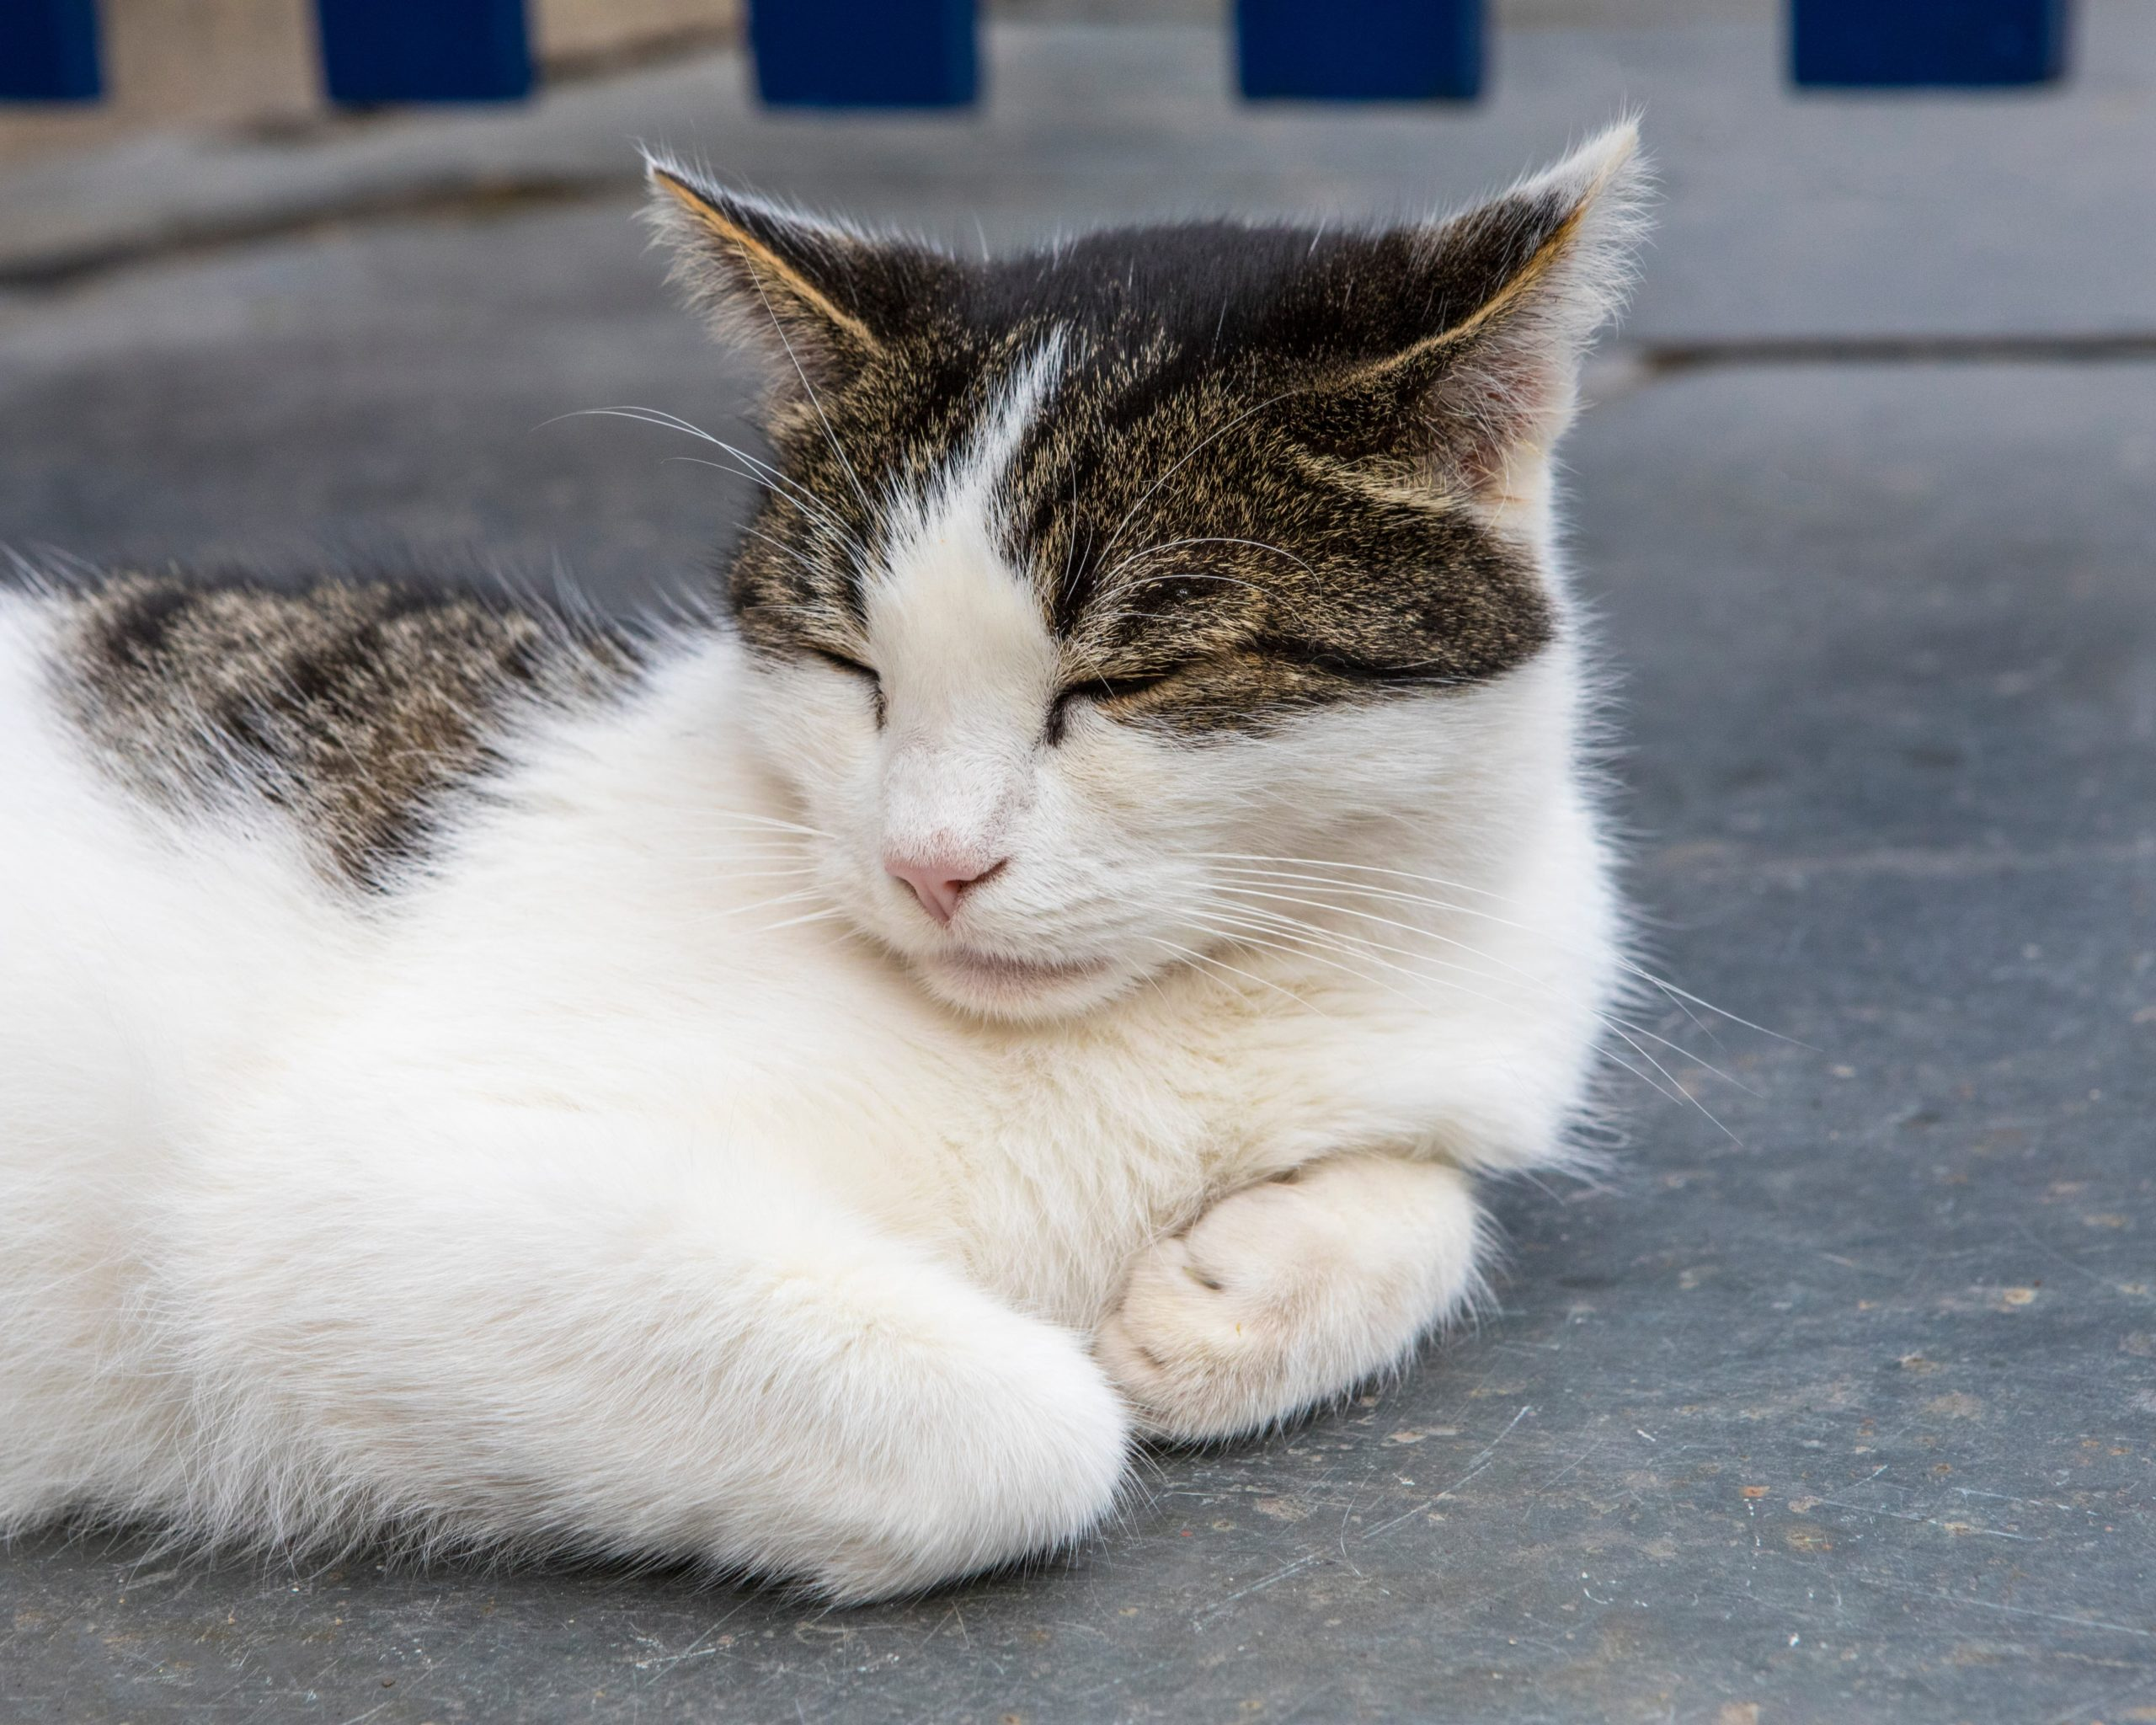 Domestic cat sleeping - Bovine TB